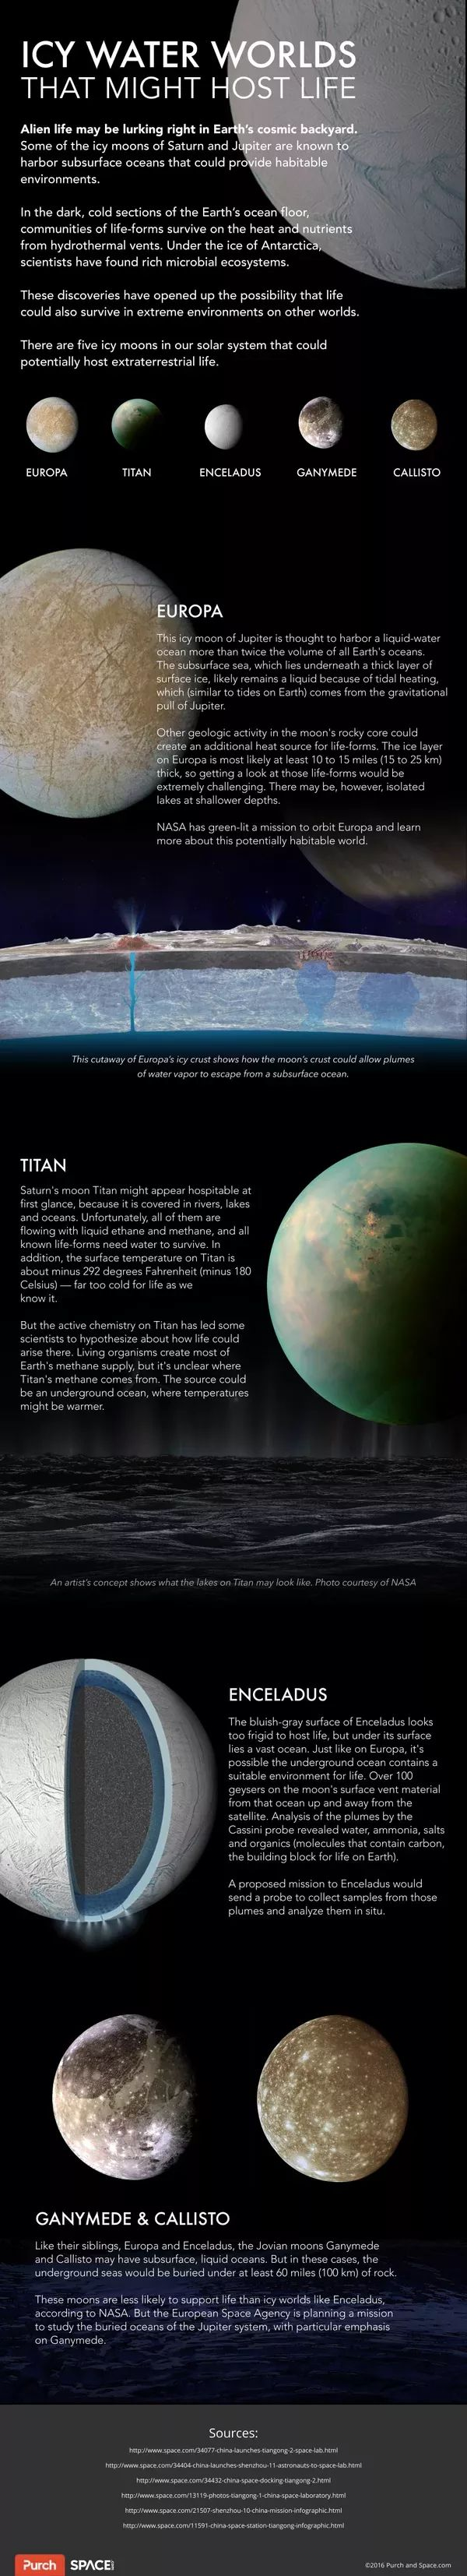 Icy Water Moons That Might Host Life (Infographic)